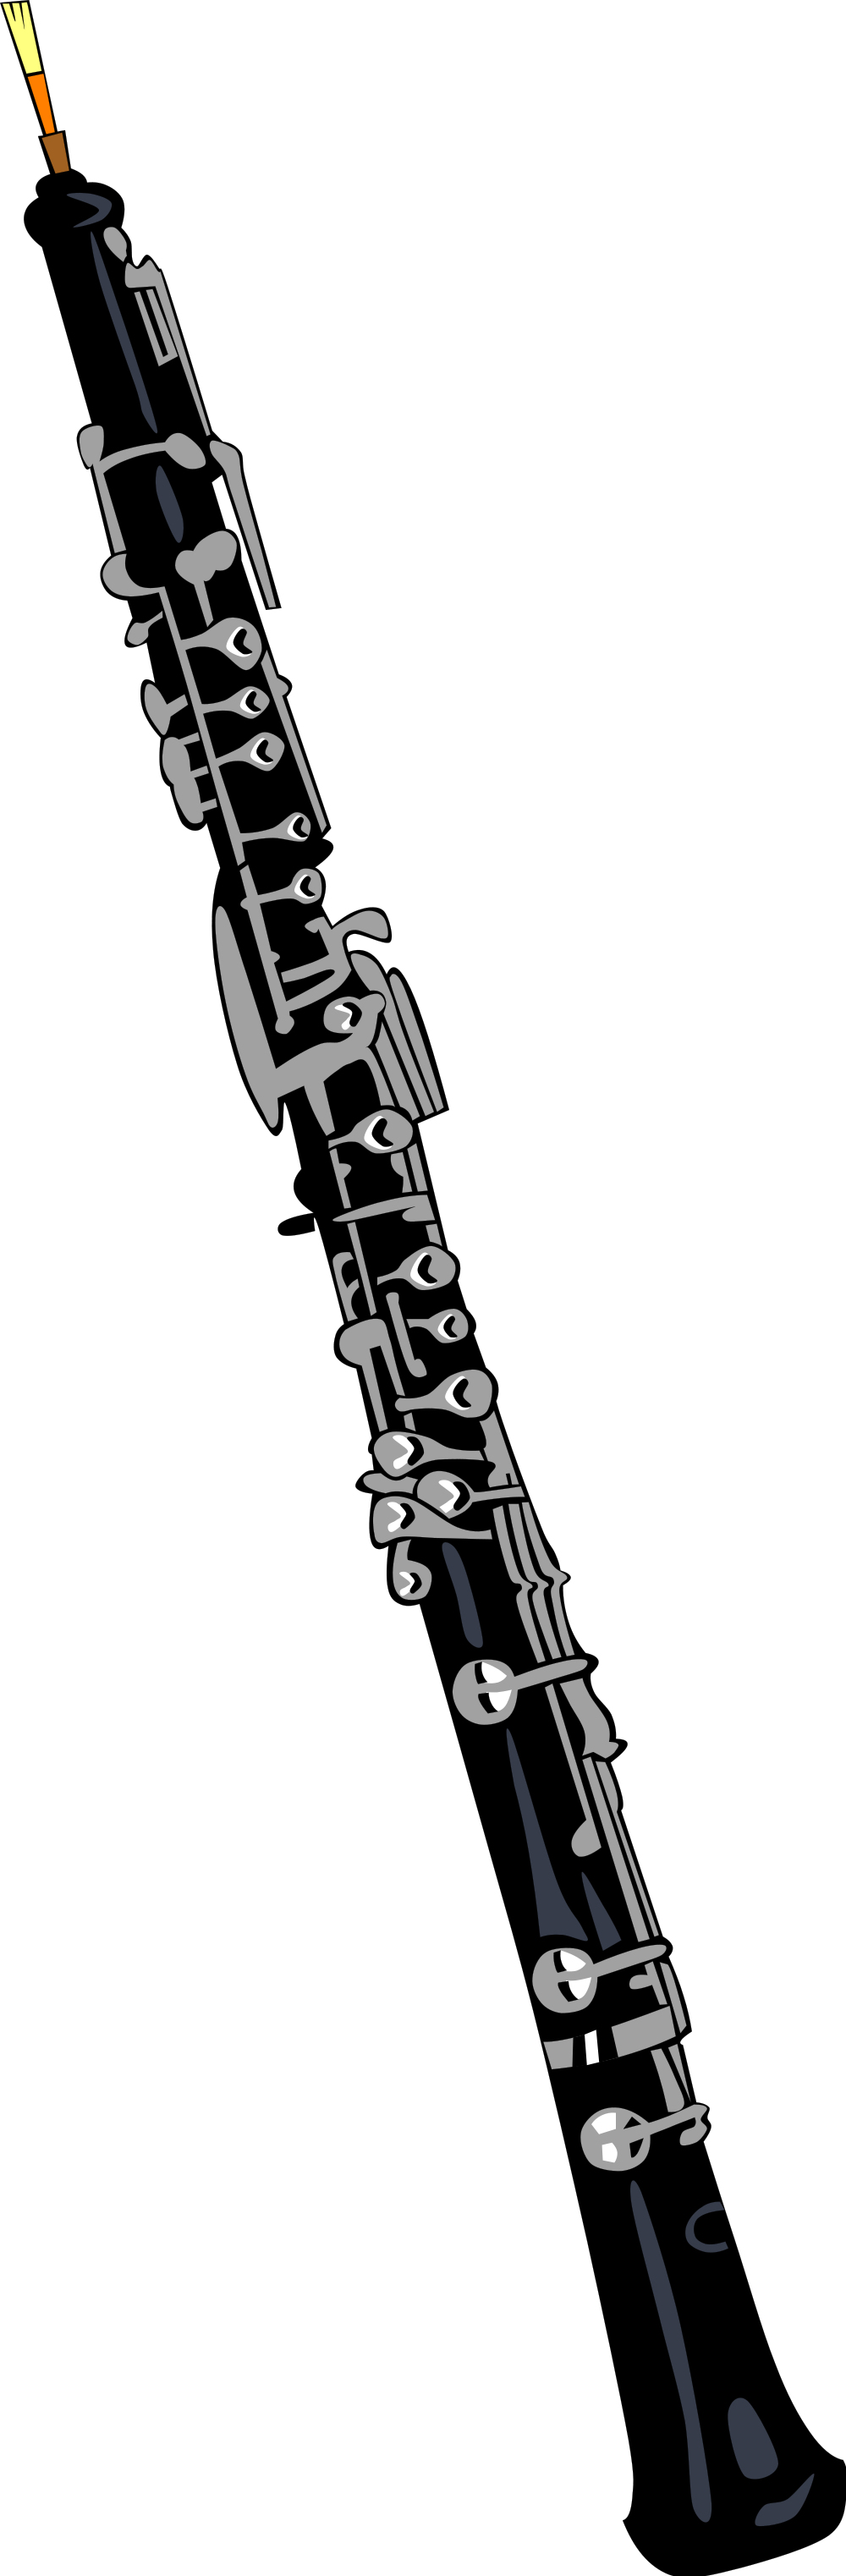 File oboe wikimedia commons. Clarinet clipart svg